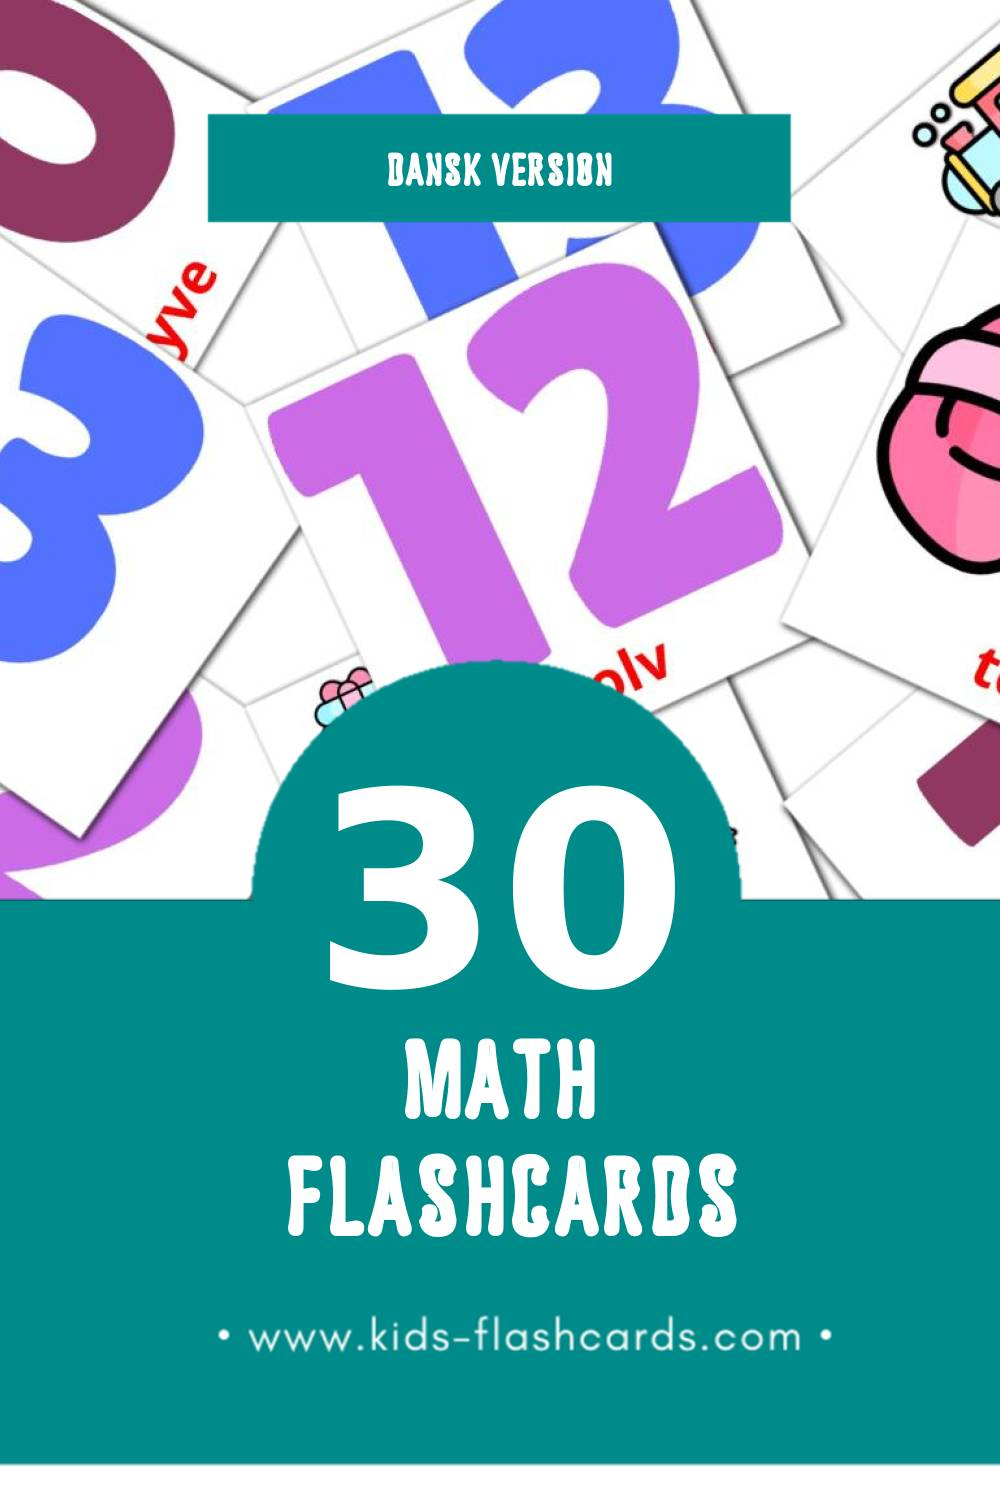 Visual Math Flashcards for Toddlers (30 cards in Dansk)